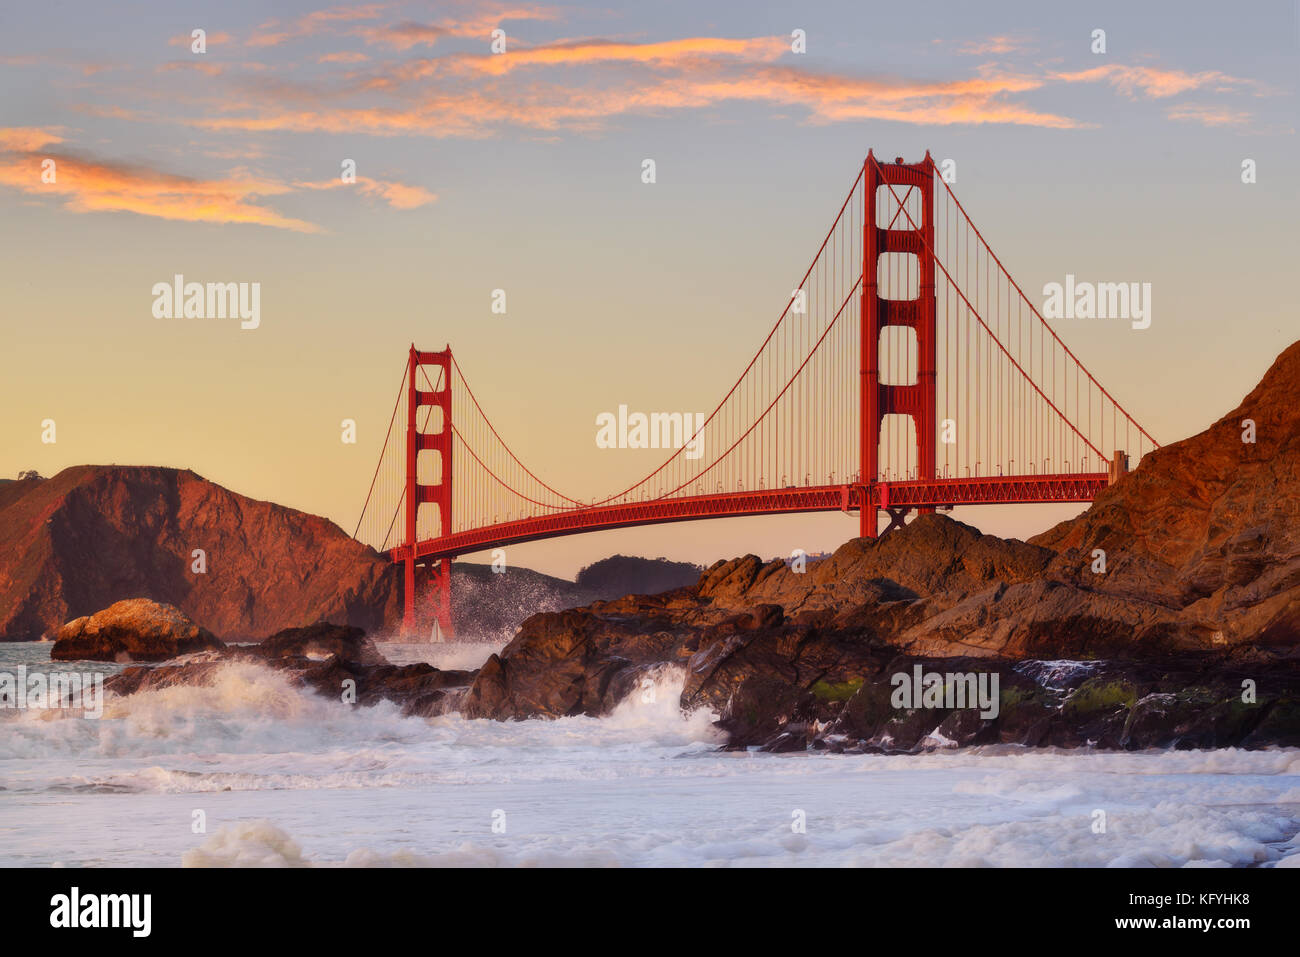 Beautiful Golden Gate the entrance to San Francisco, California, USA. Sunset and clear sky - Stock Image